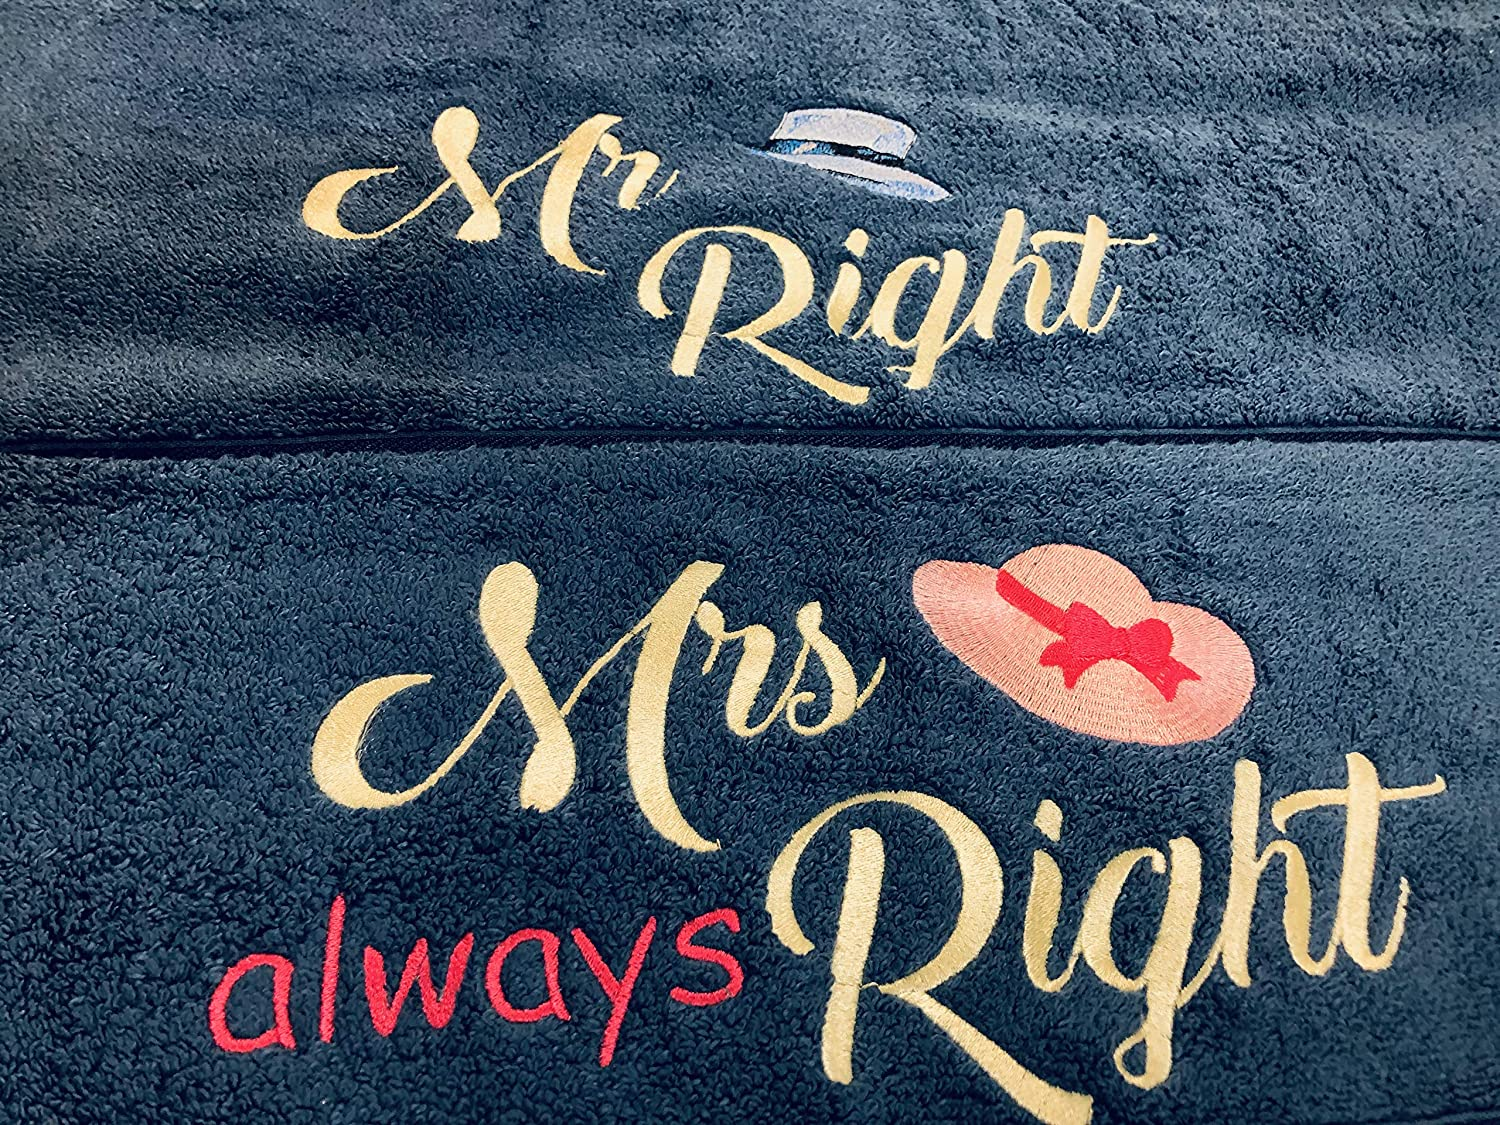 30 X 56 inches Couples Gift Embroidered His Her Blue Prick-N-Pounce Customized Large 100/% Cotton Bath Towel Set Two